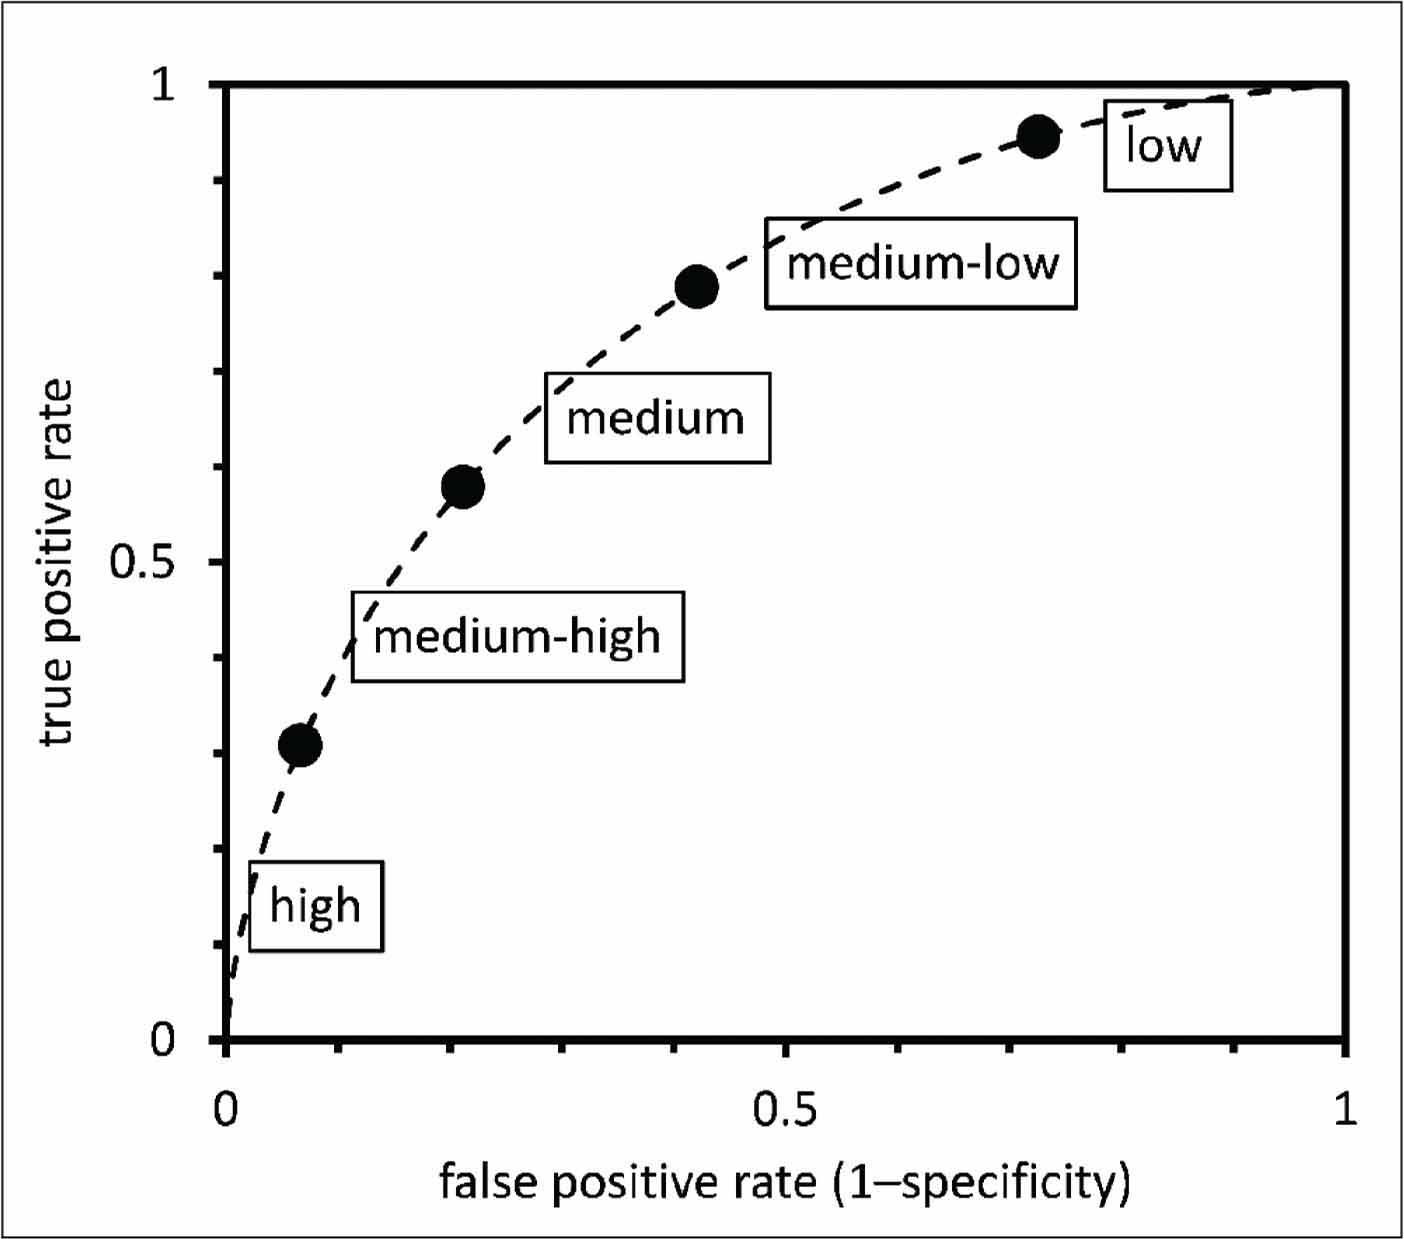 A receiver operative characteristic curve for describing the performance of a risk assessment technique.